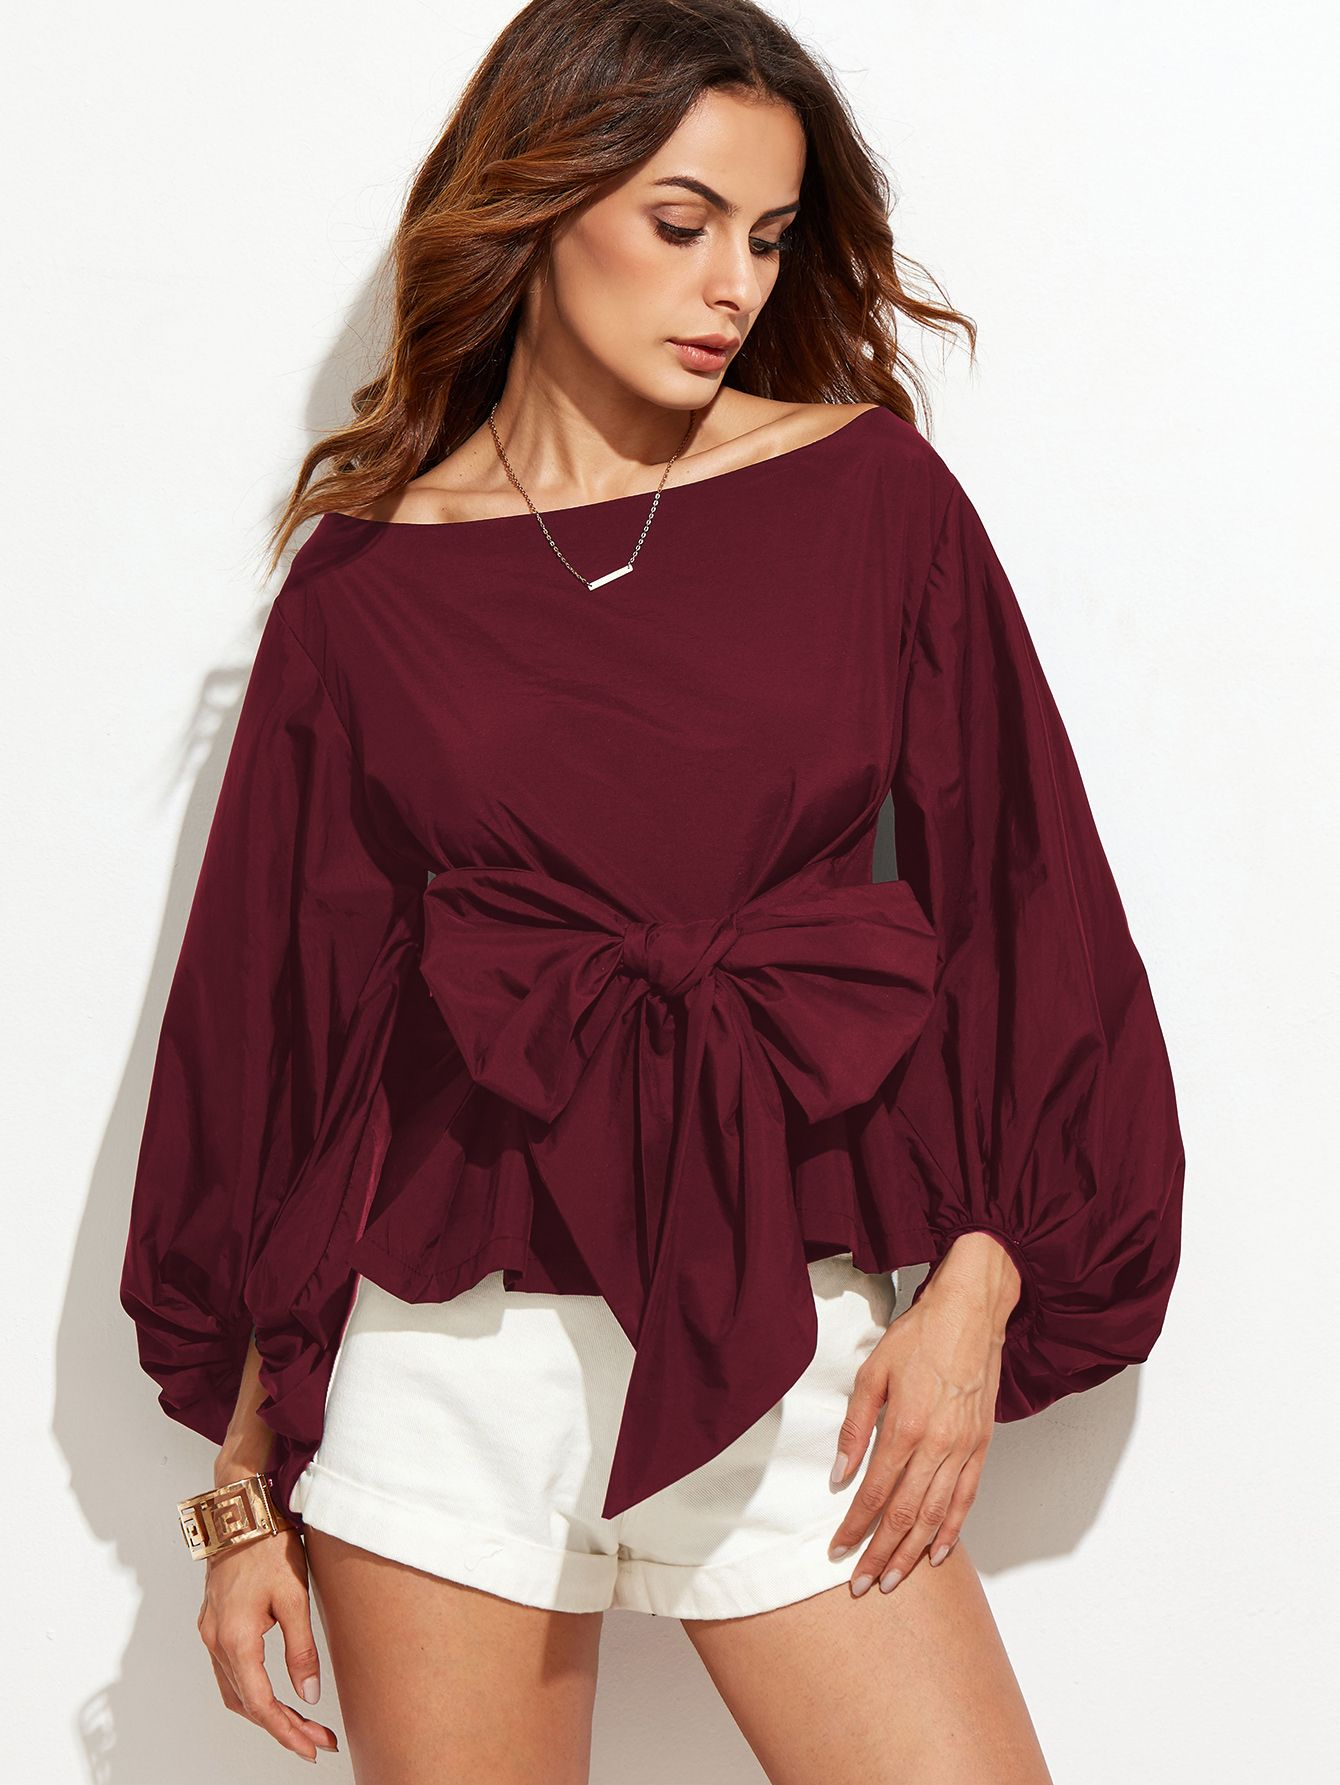 3b2ceb30107357 Shop Burgundy Boat Neck Lantern Sleeve Bow Tie Top online. SheIn offers  Burgundy Boat Neck Lantern Sleeve Bow Tie Top   more to fit your  fashionable needs.